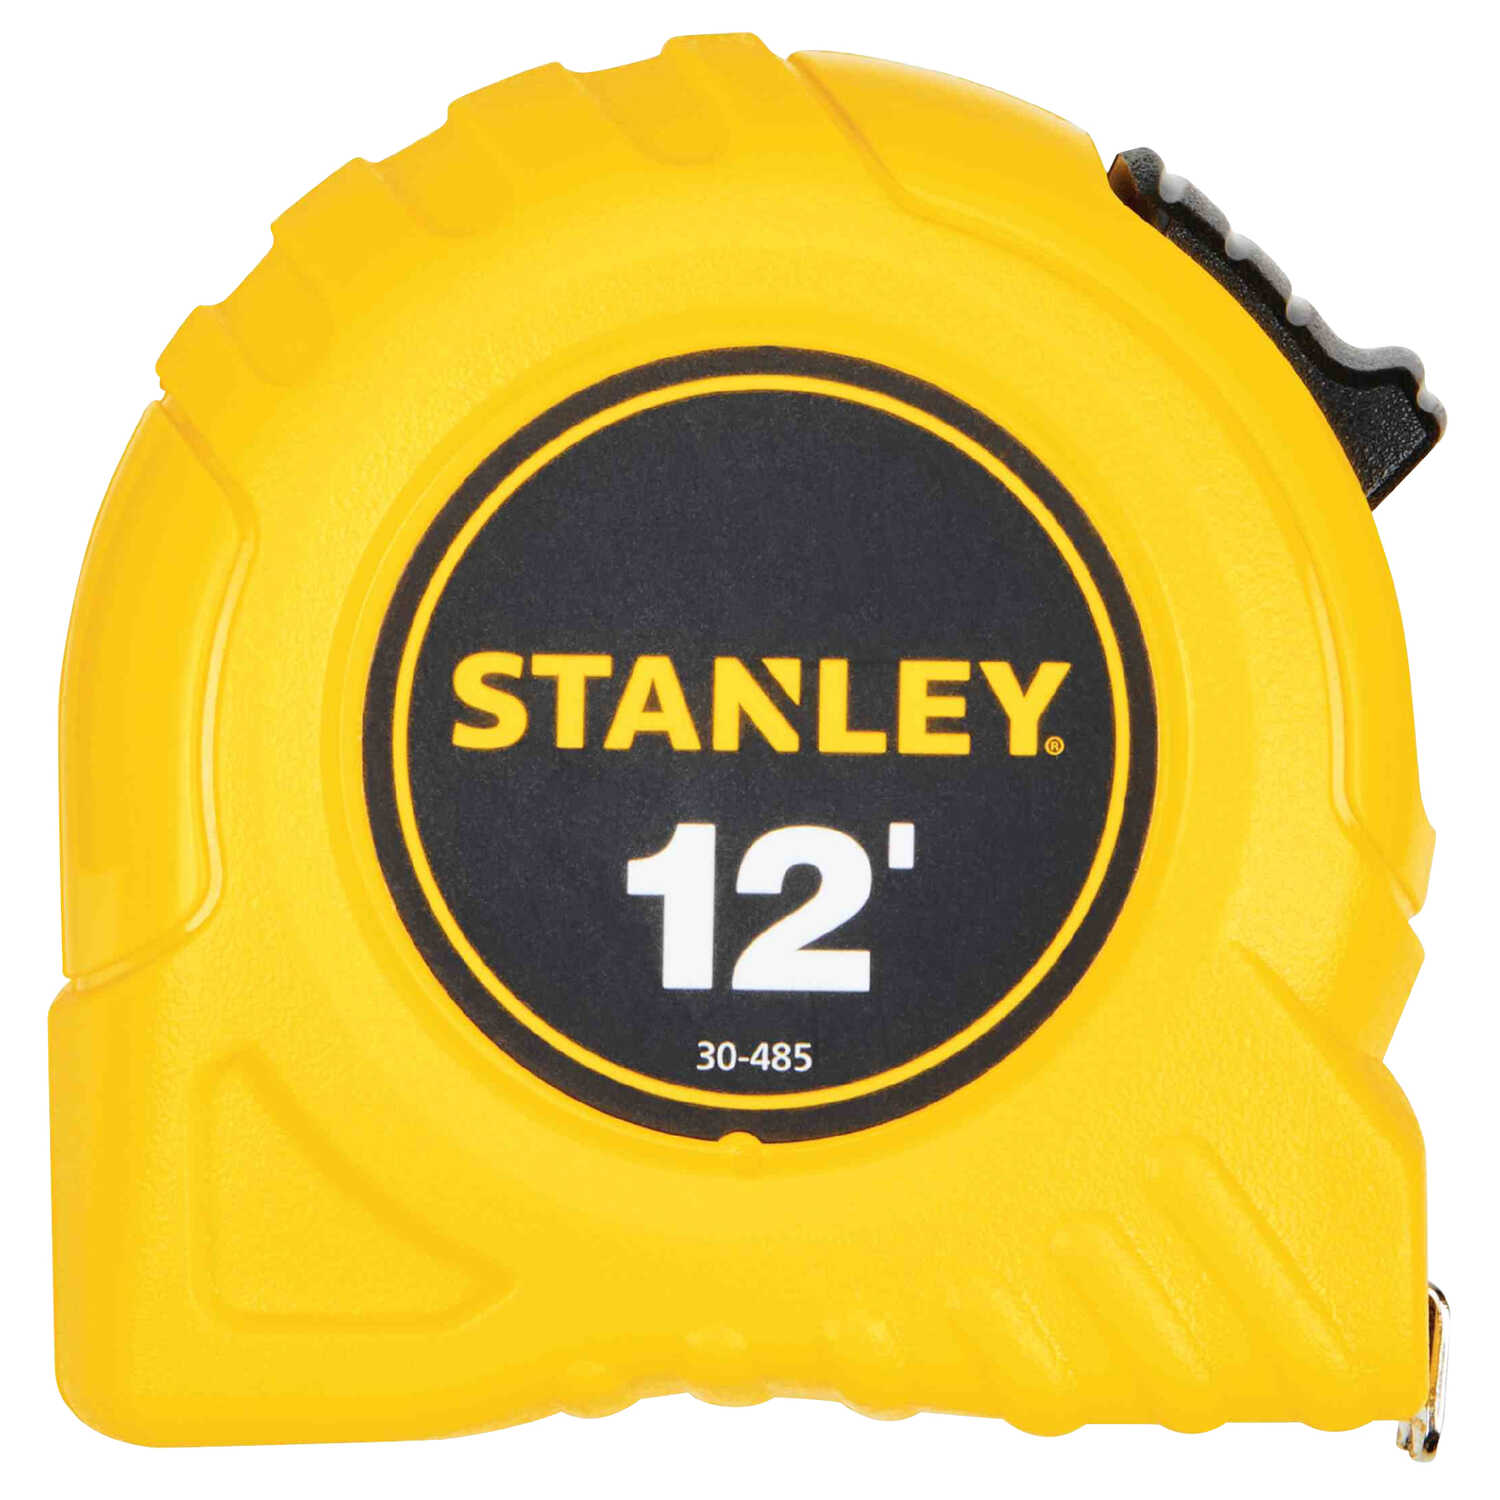 Stanley  1 in. W x 12 ft. L Tape Measure  Yellow  1 pk